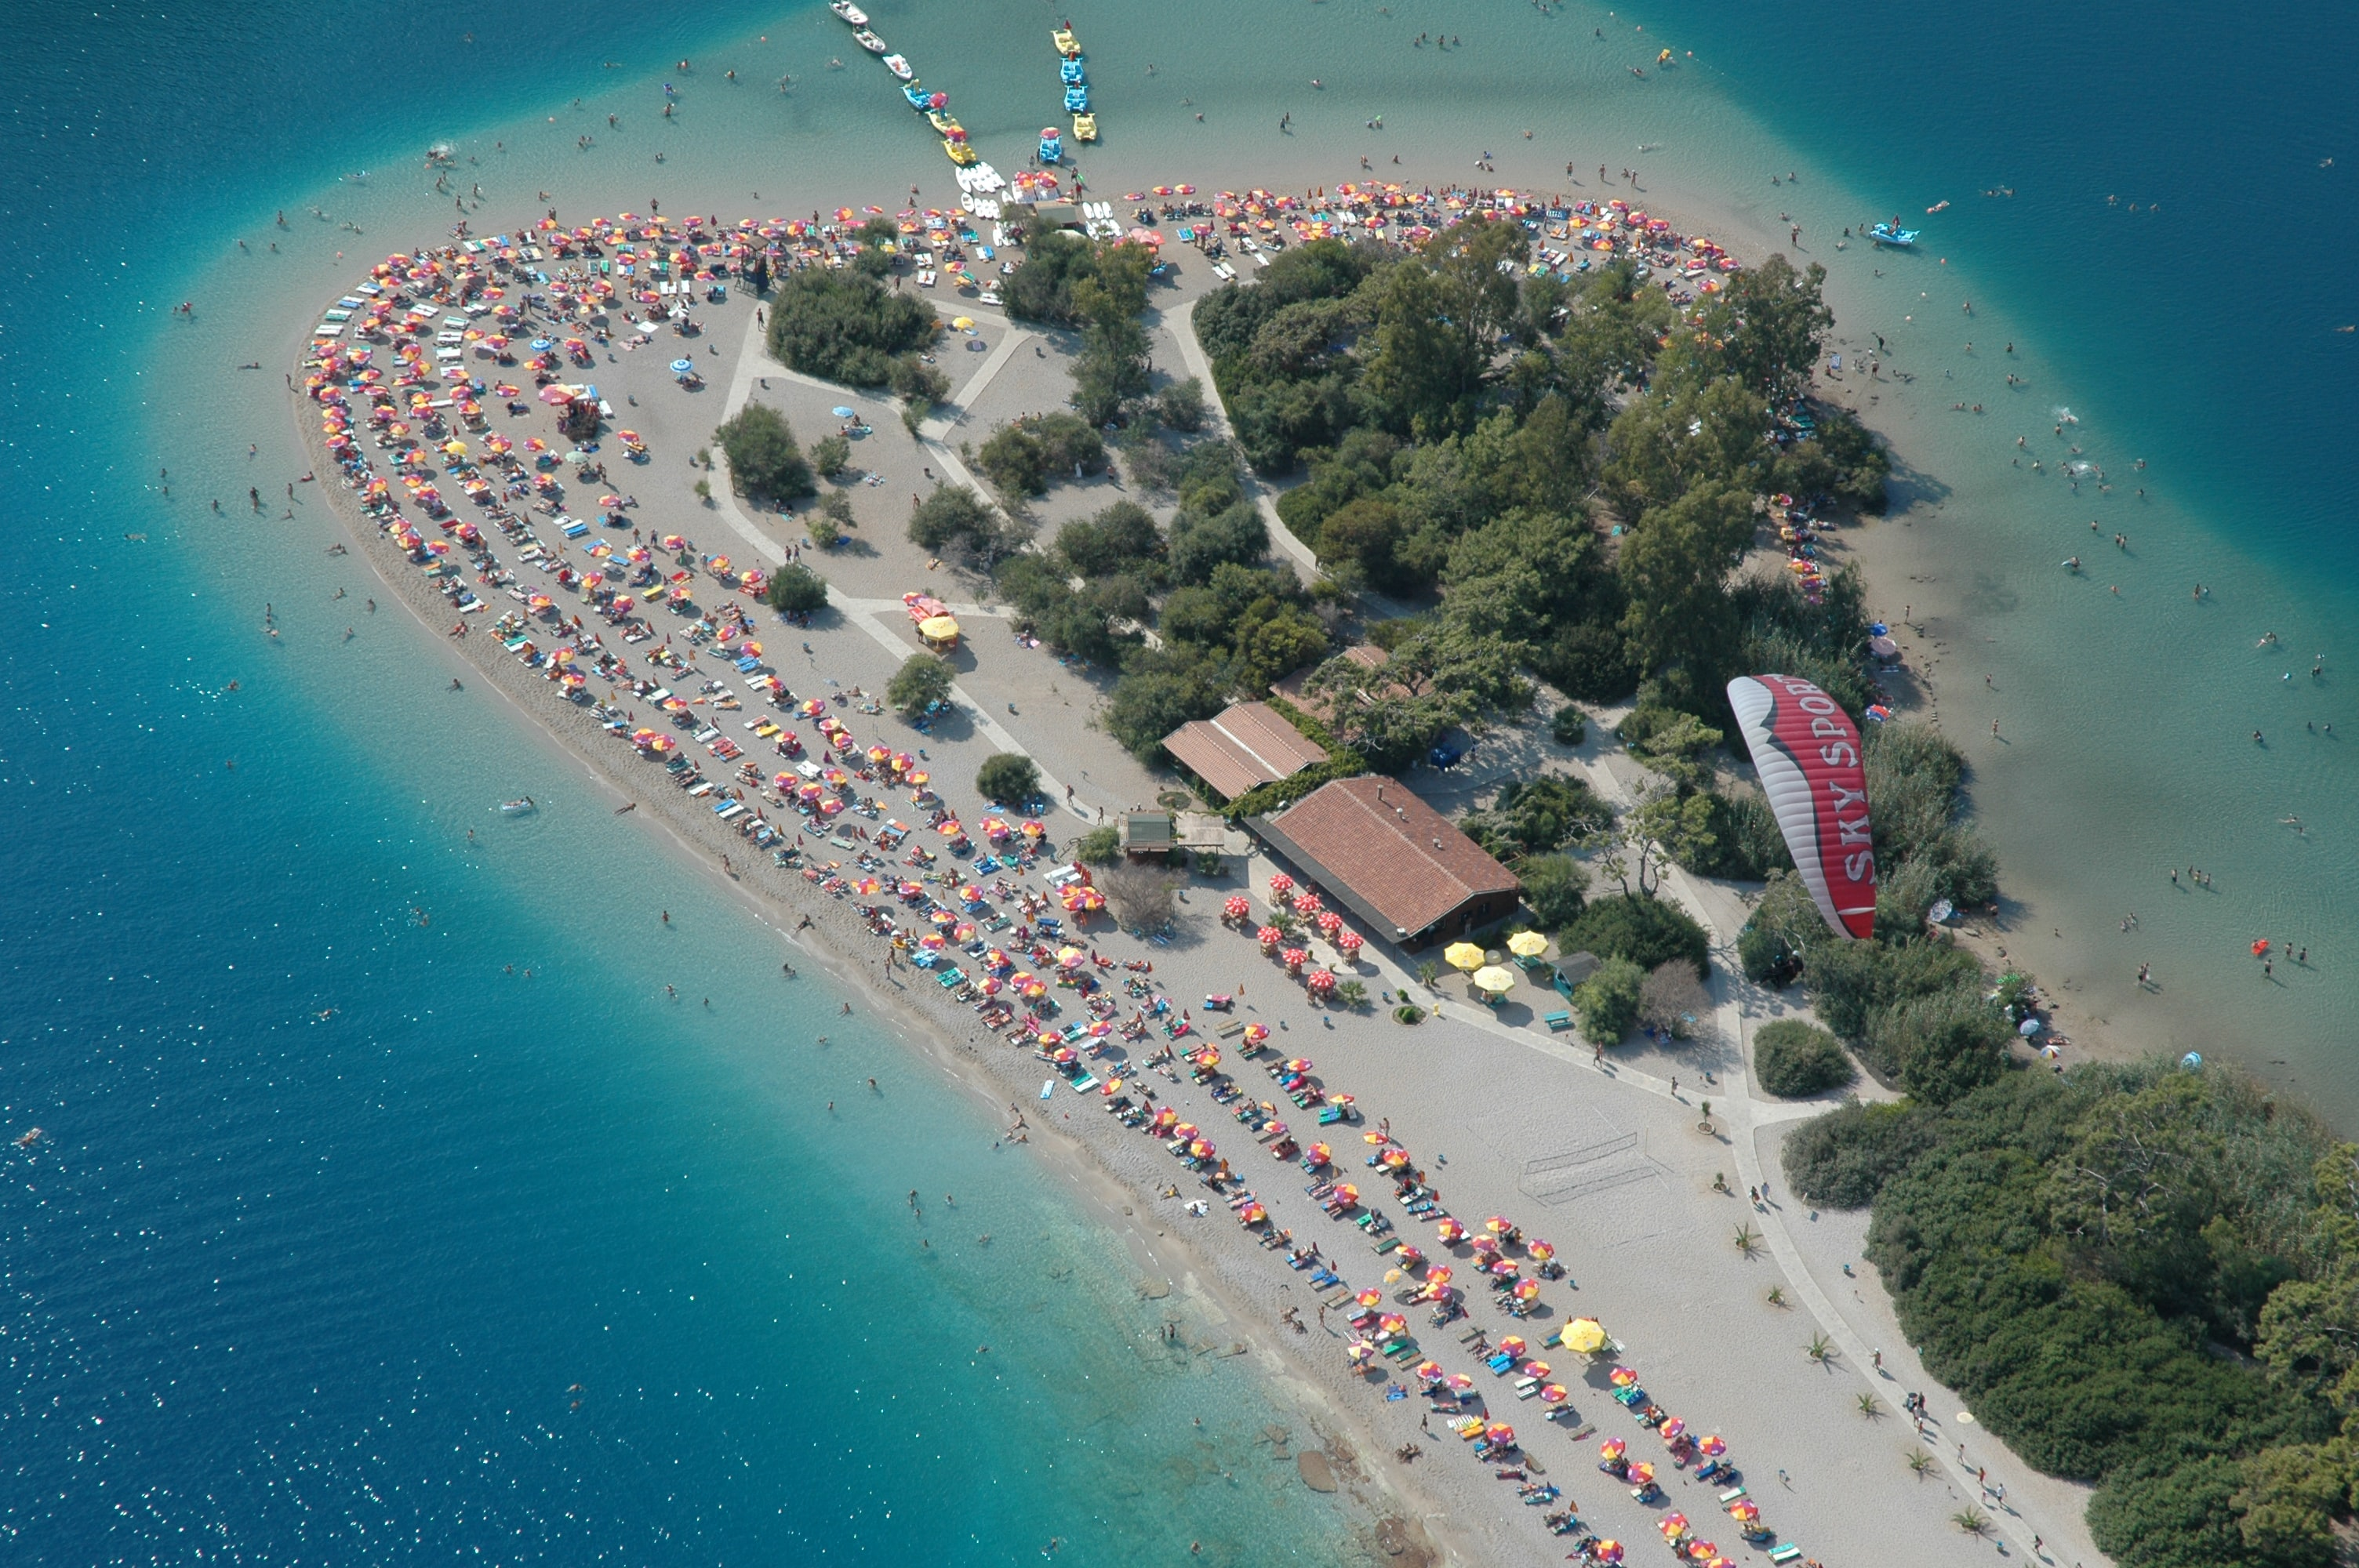 Drone view of a crowded sand beach in Ölüdeniz